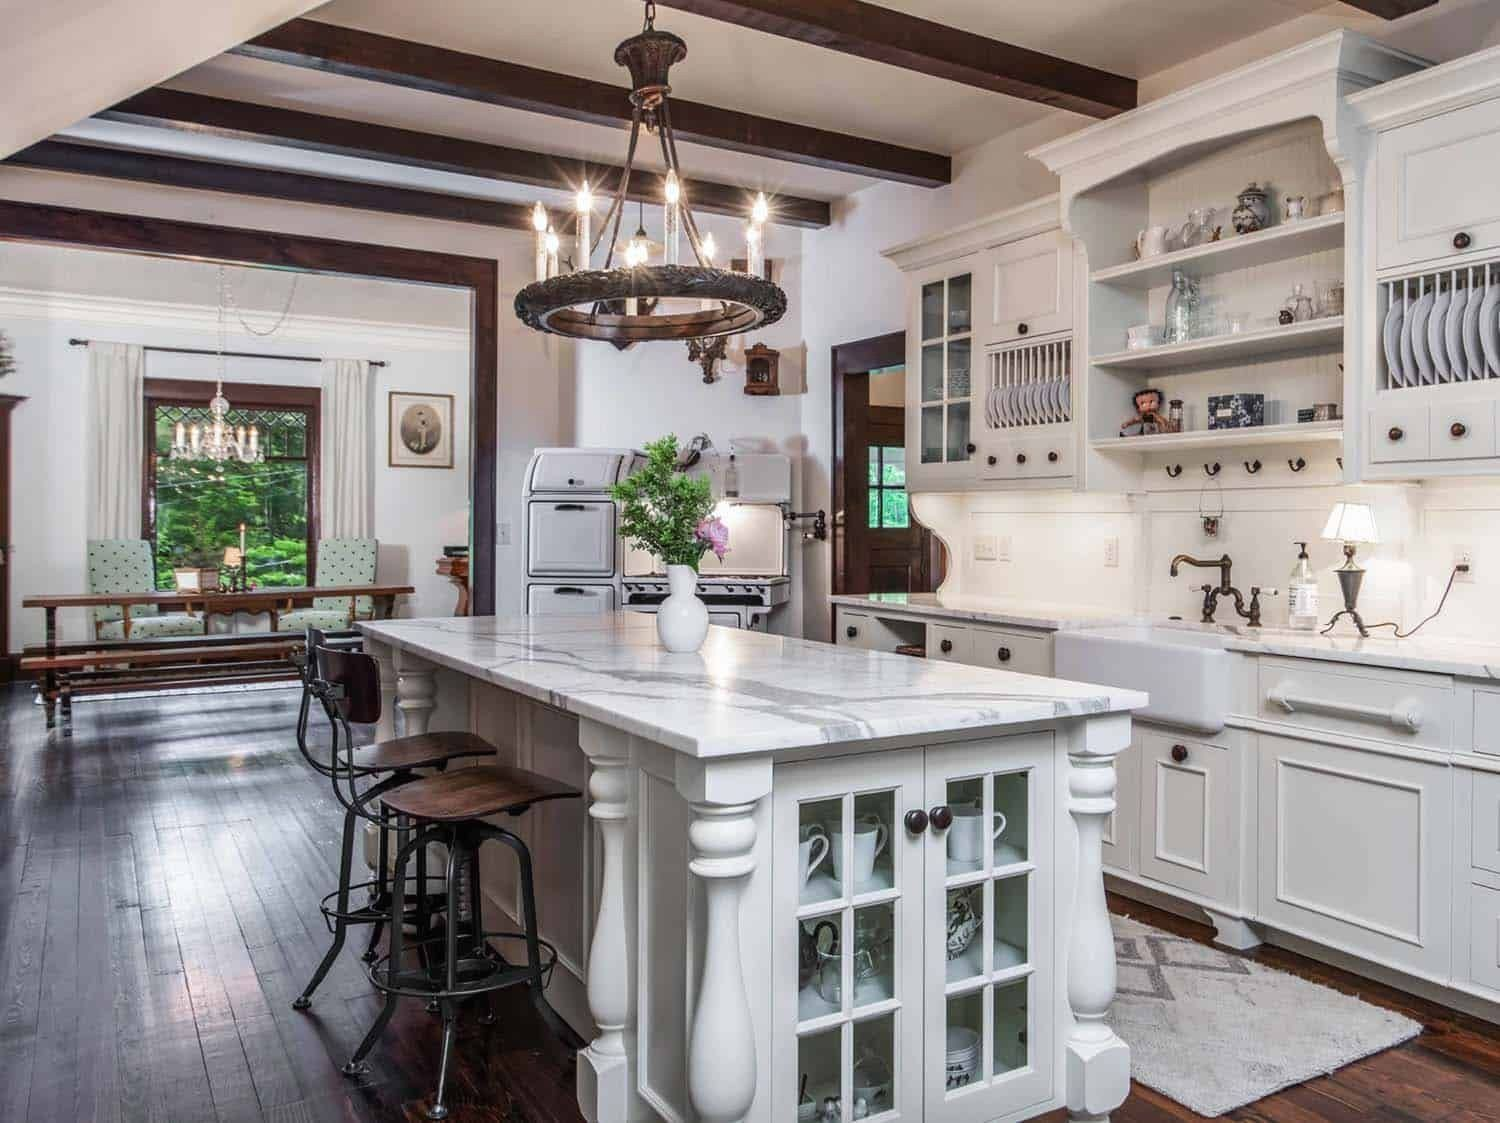 Victorian Farmhouse In Georgia Gets Transformed With Charming Details Modern Design In 2020 Victorian Farmhouse Modern Victorian Homes Victorian Interior Design